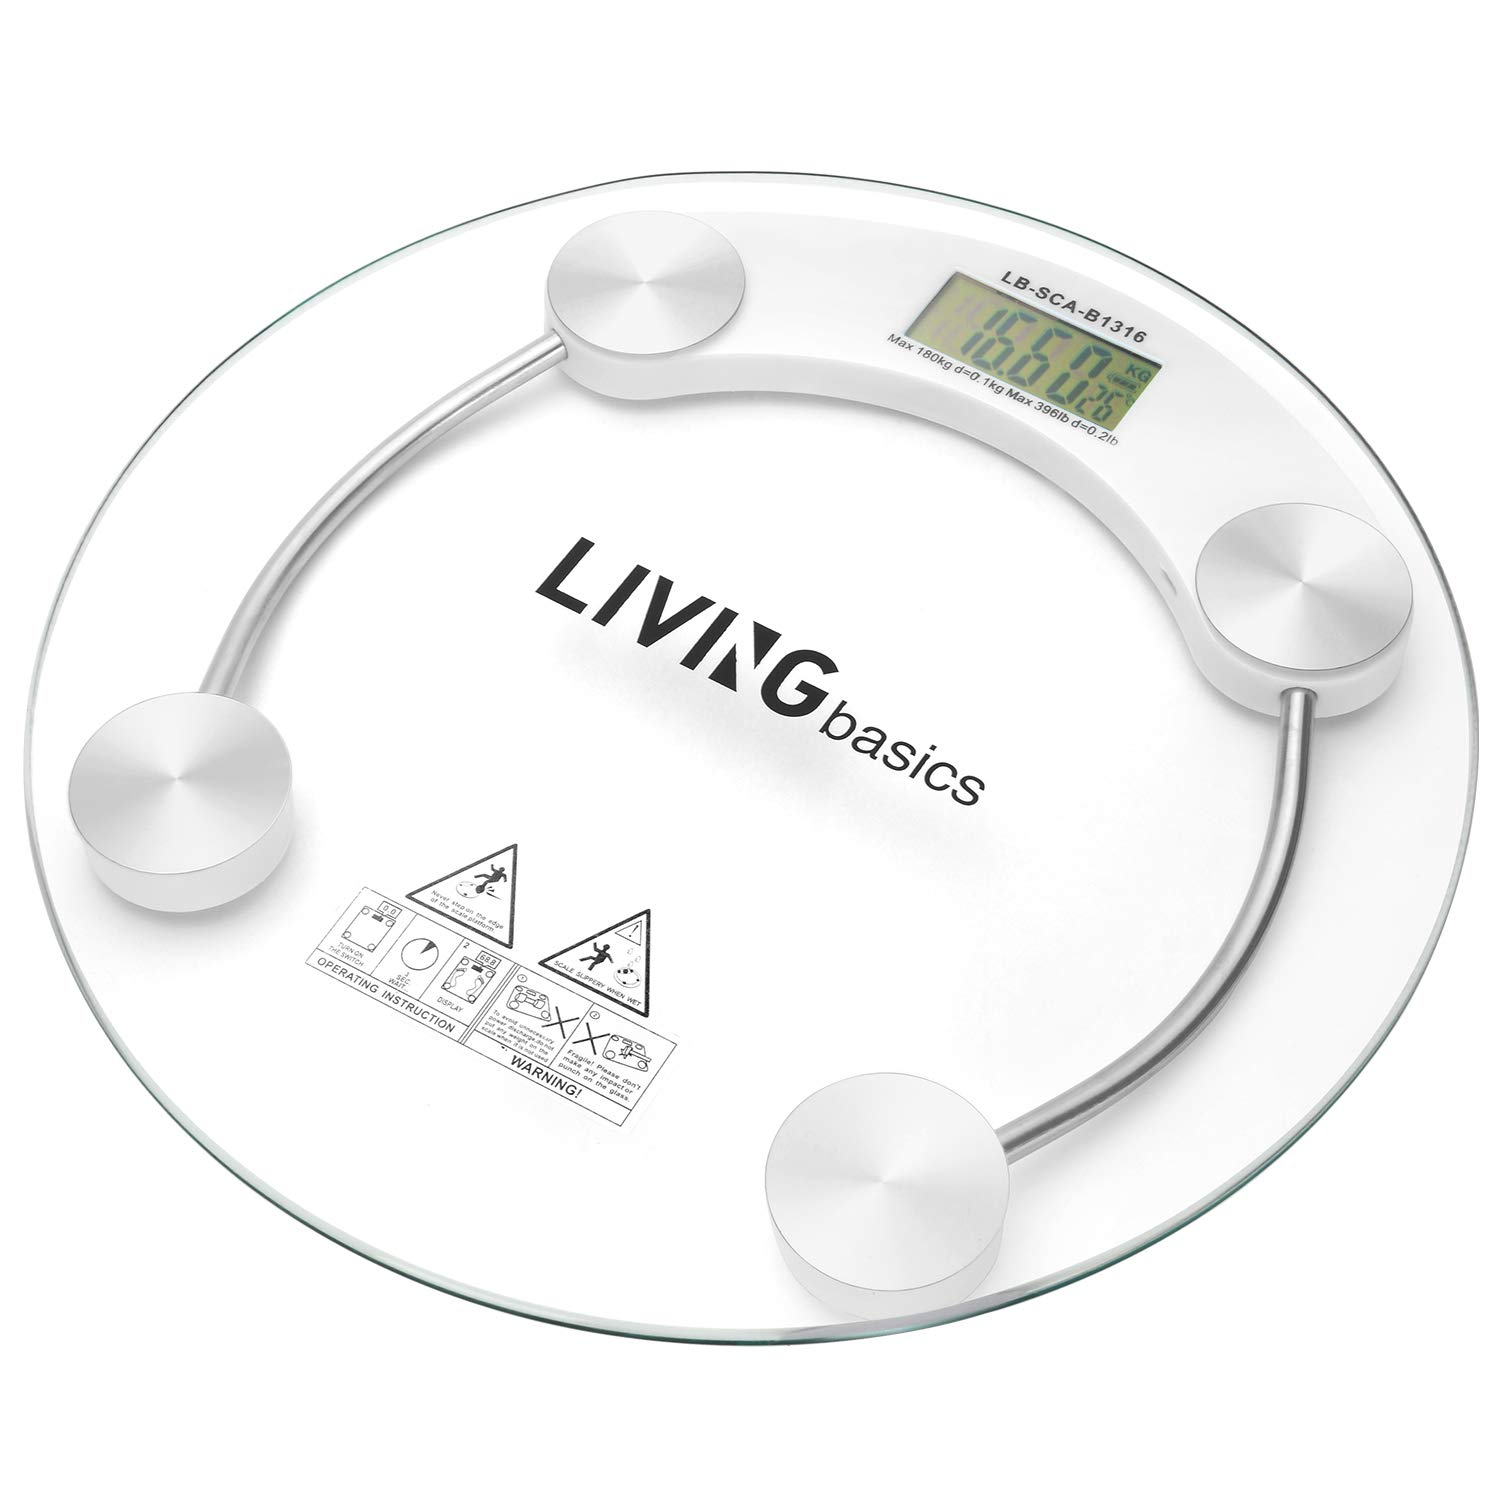 LIVINGbasics Smart Precision Digital Bathroom Scale with Step-On Technology, Non-Slip Tempered Glass Platform, Round